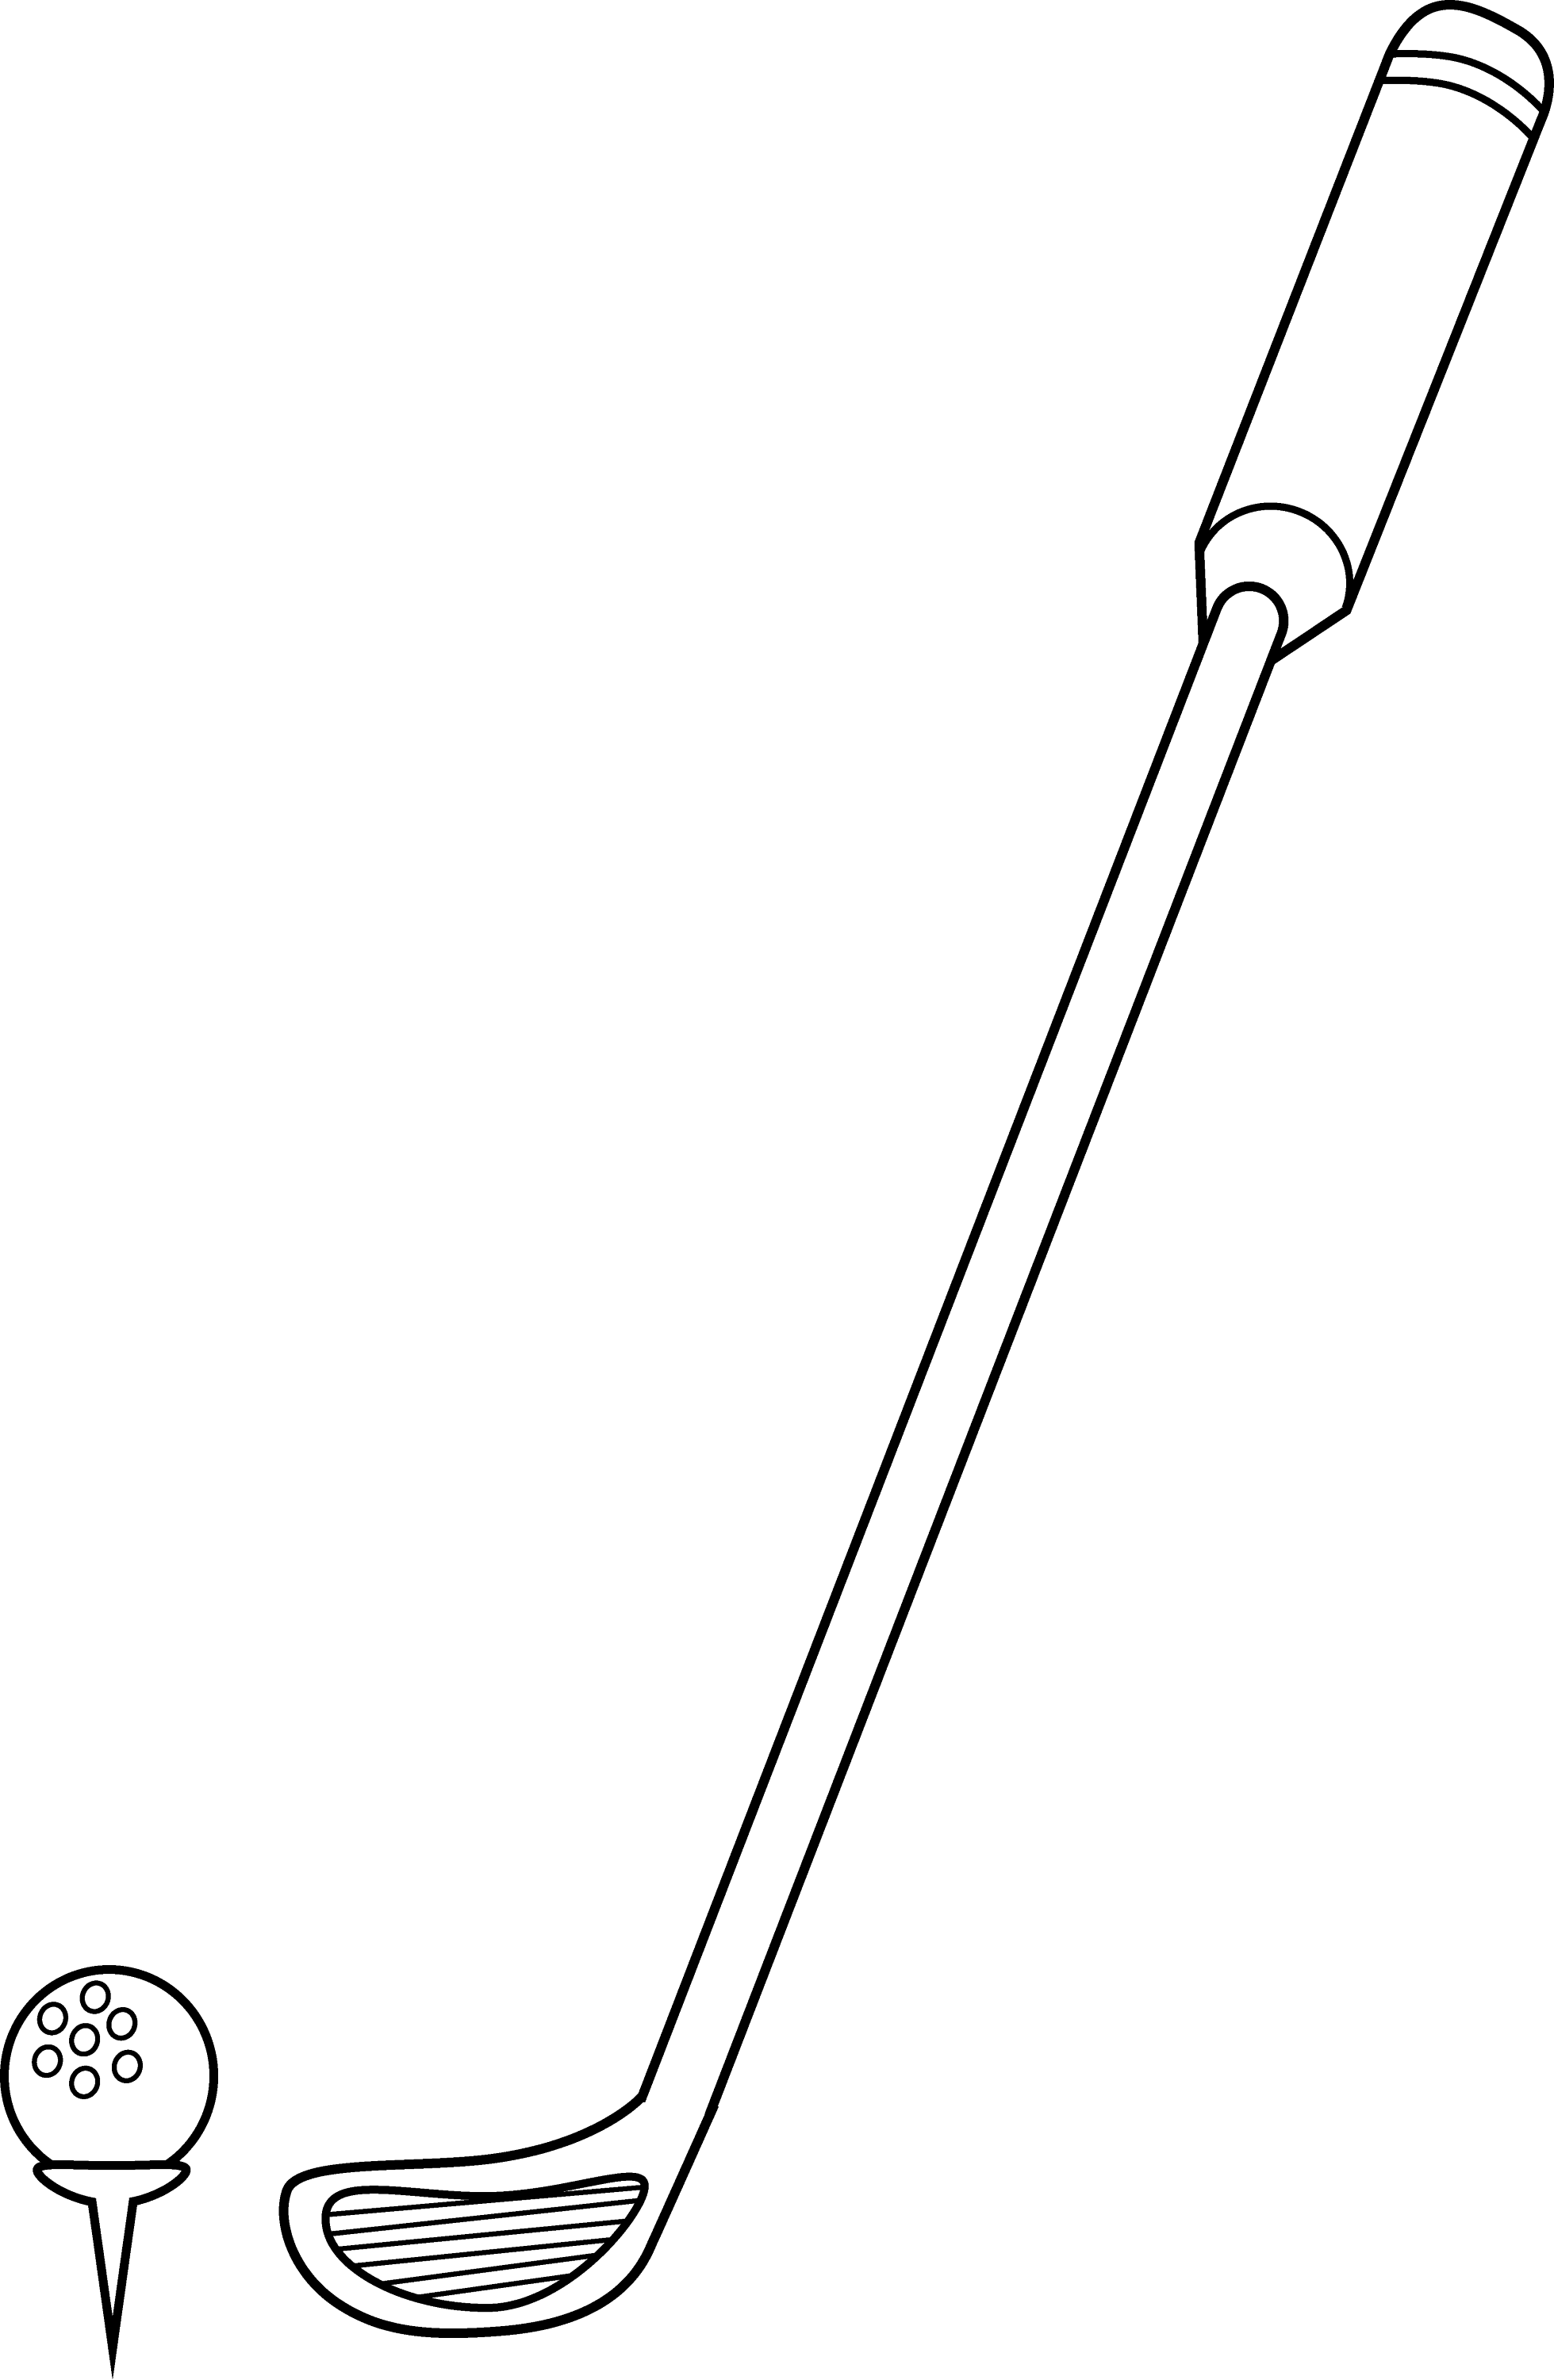 golf club and ball coloring page free clip art